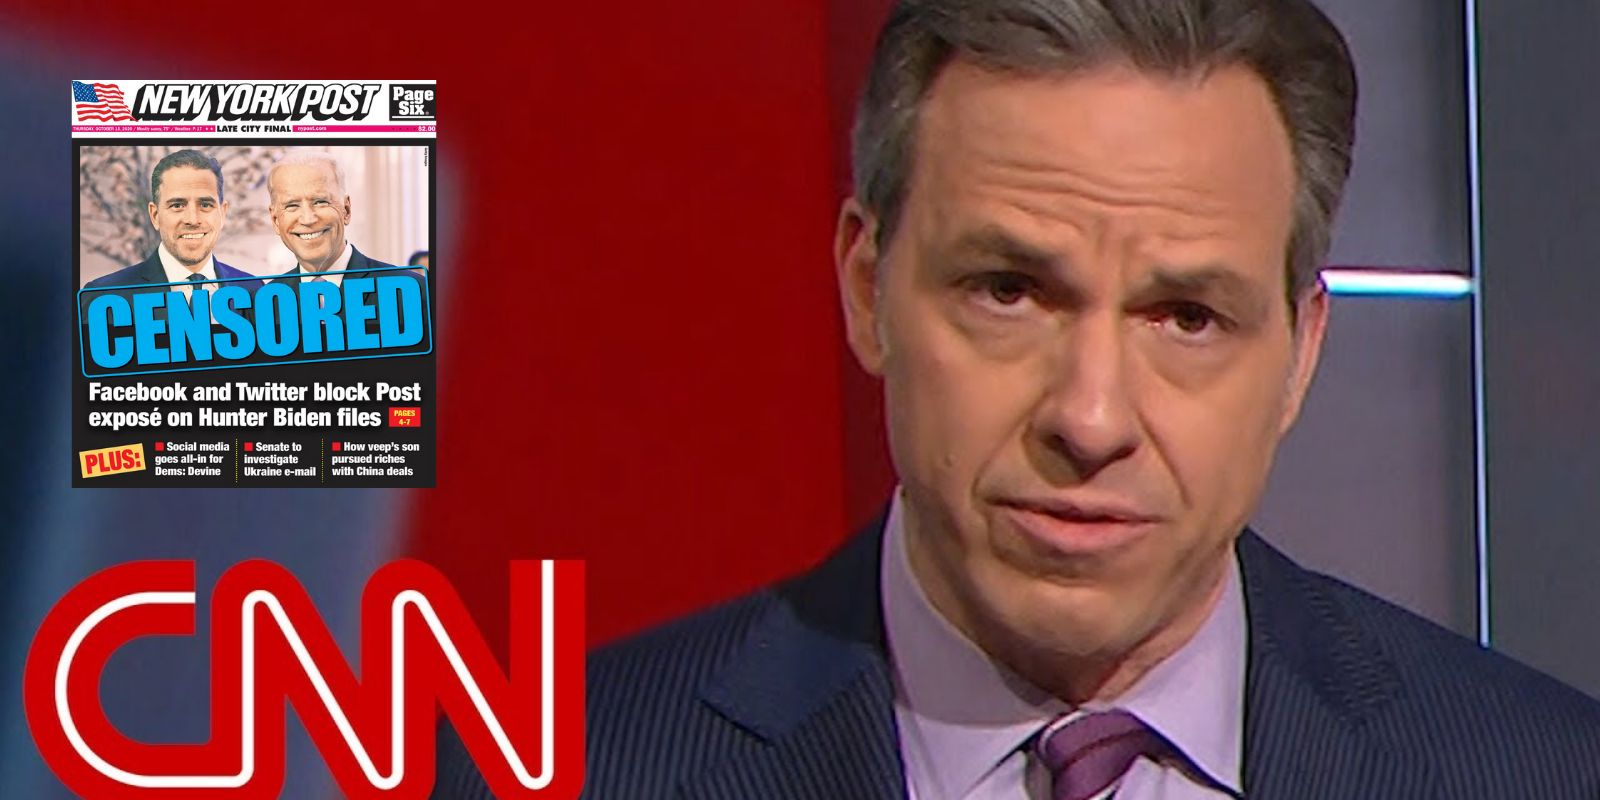 CNN's Jake Tapper blames New York Post for being censored by Twitter